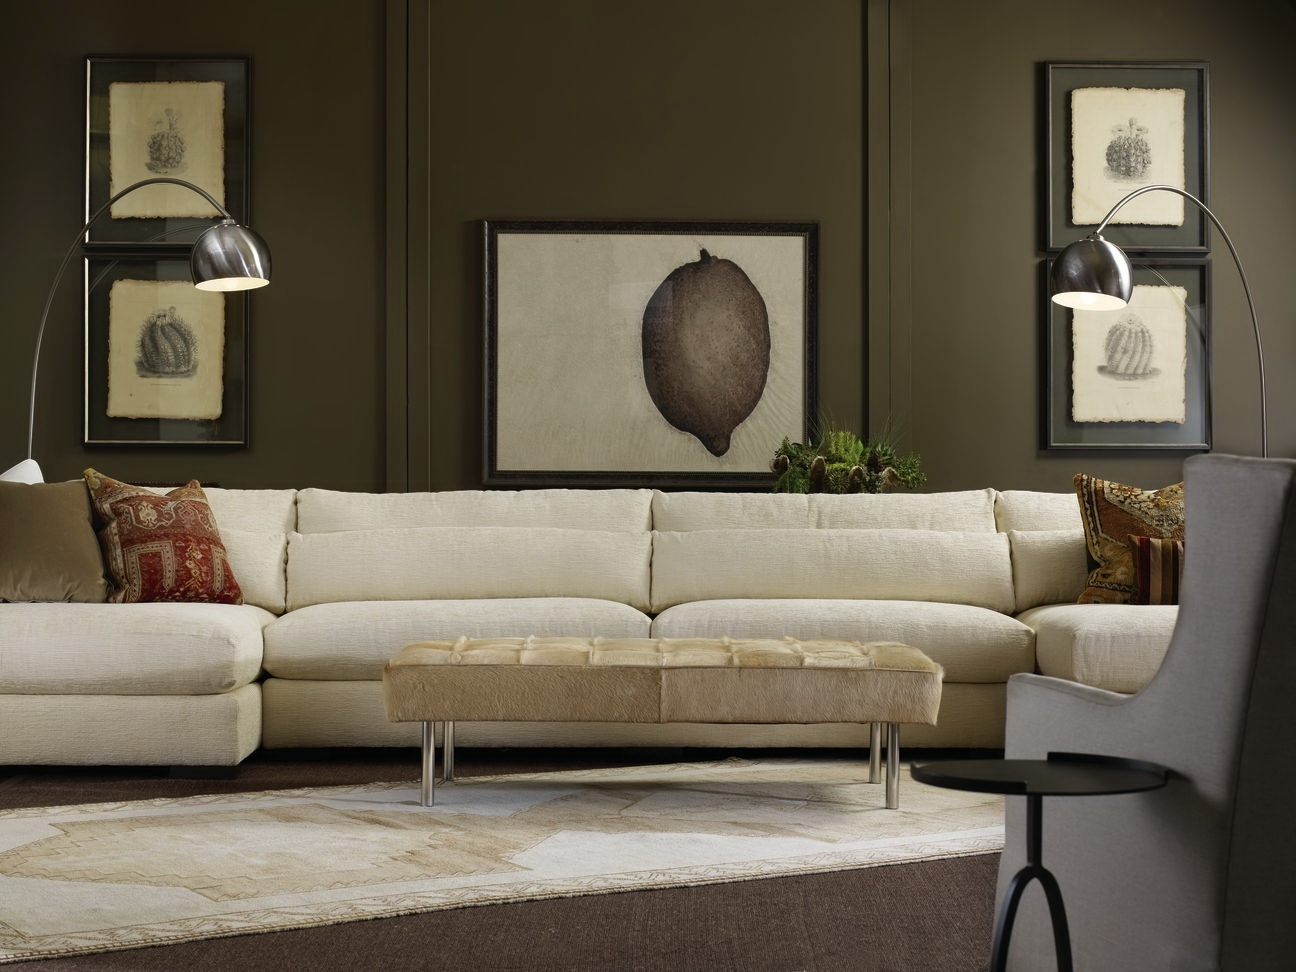 Well Liked Down Feather Sectional Sofas For Furniture: Nice Interior Furniture Designrobert Michaels (View 14 of 15)